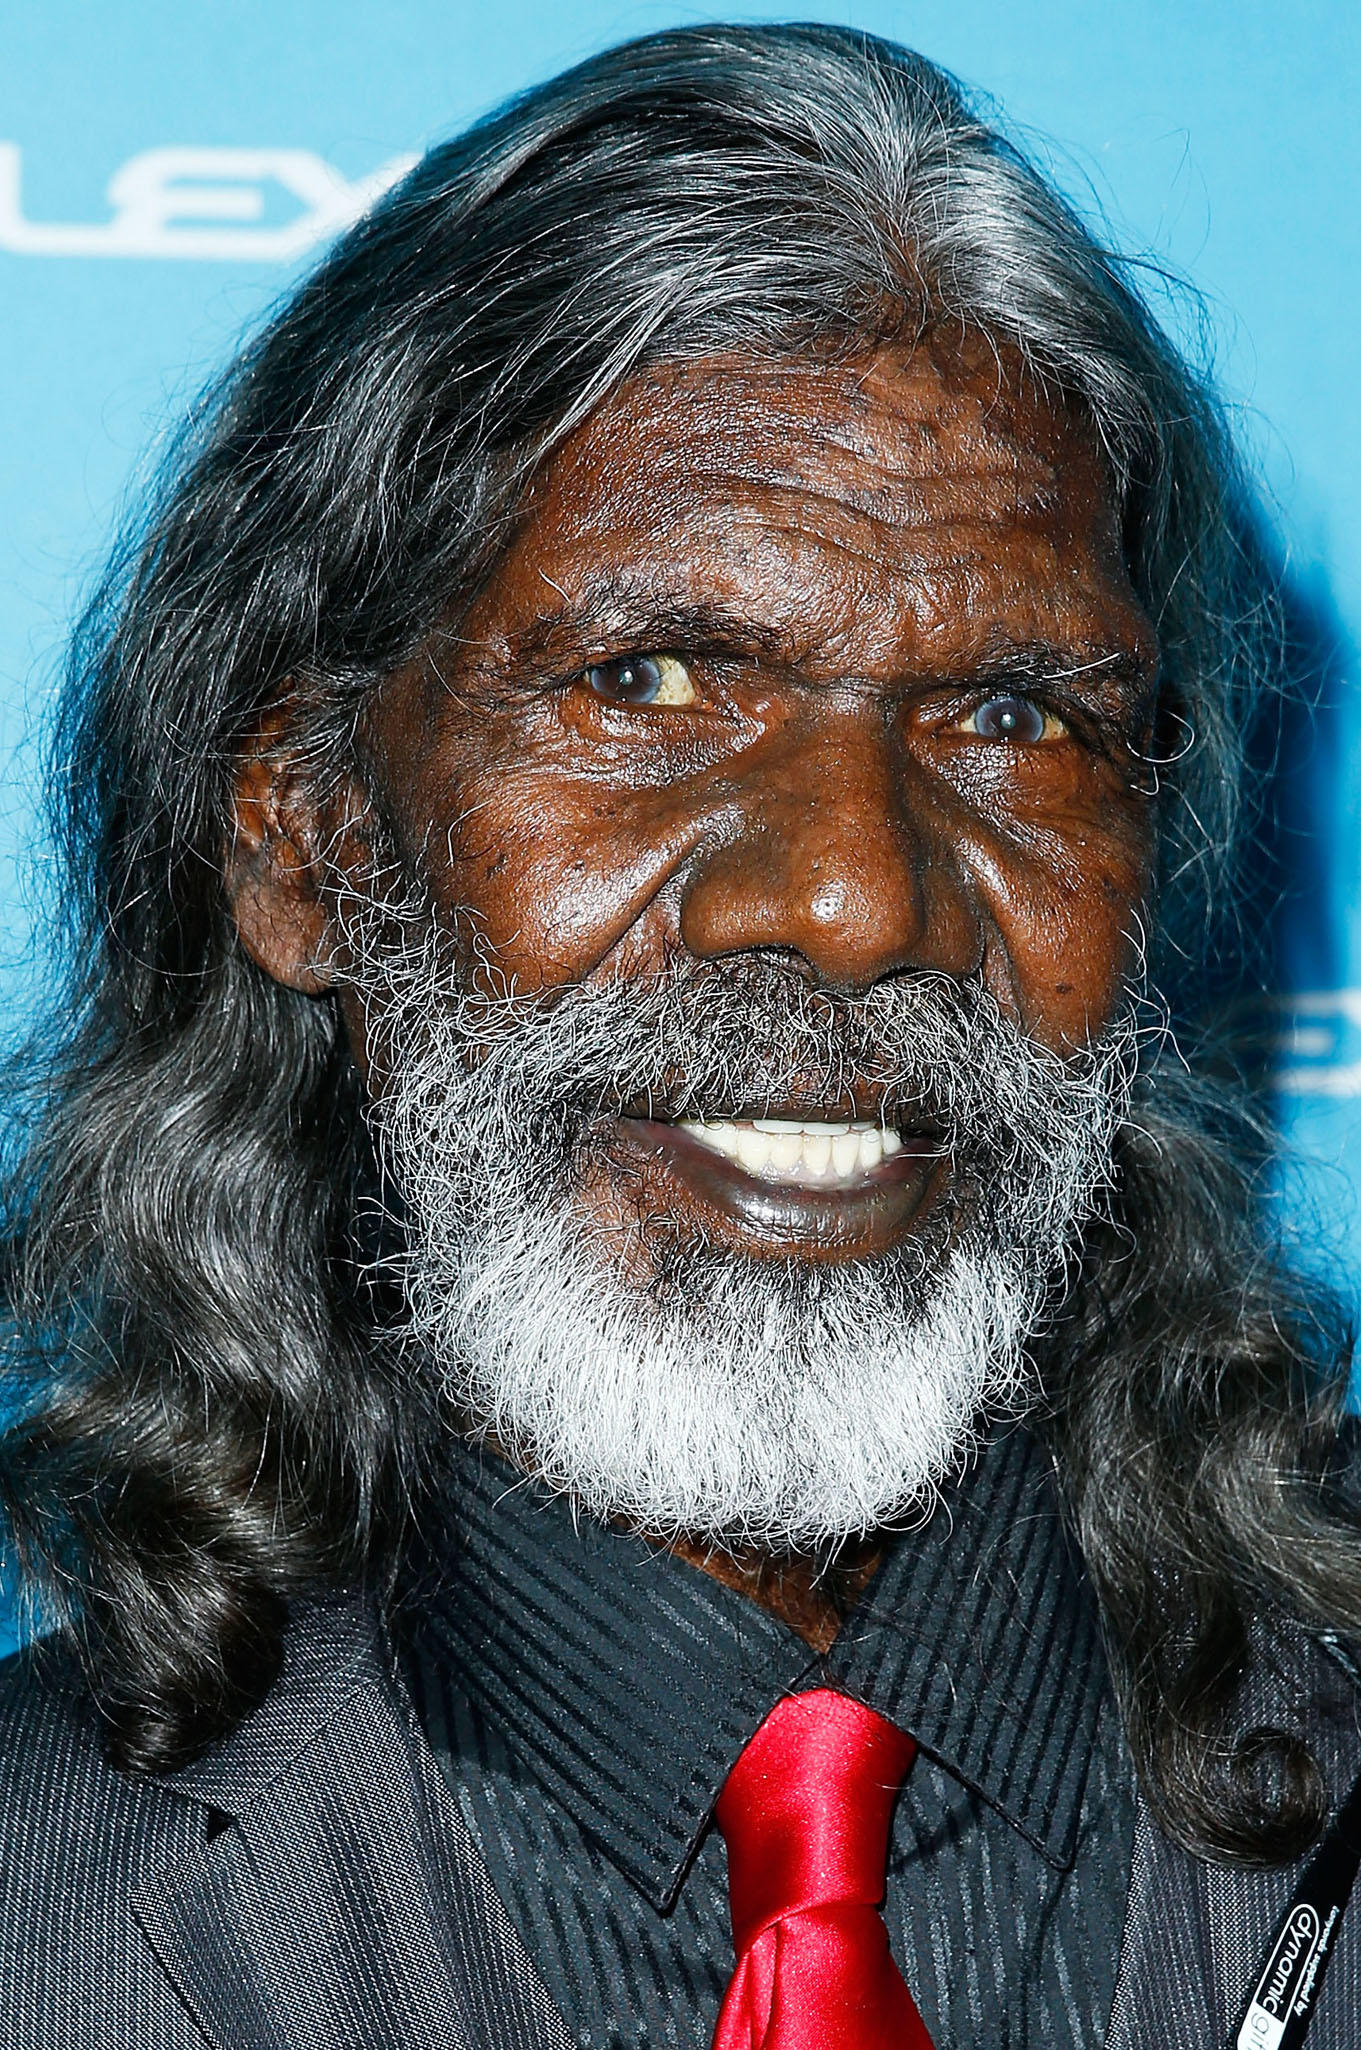 David Gulpilil at the Sydney Film Festival 2016 Opening Night Gala.